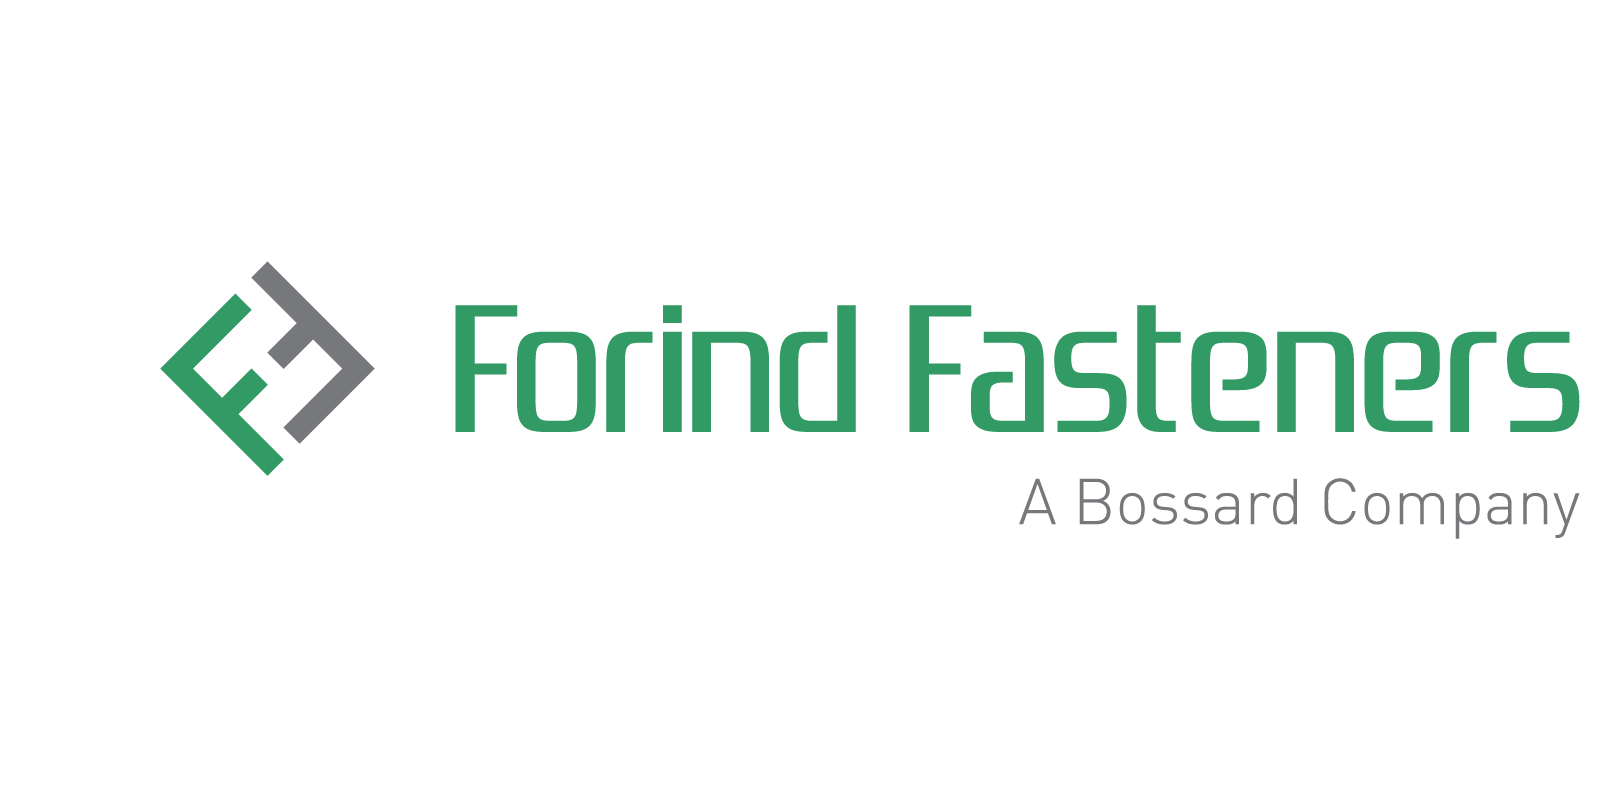 Forind Fasteners logo